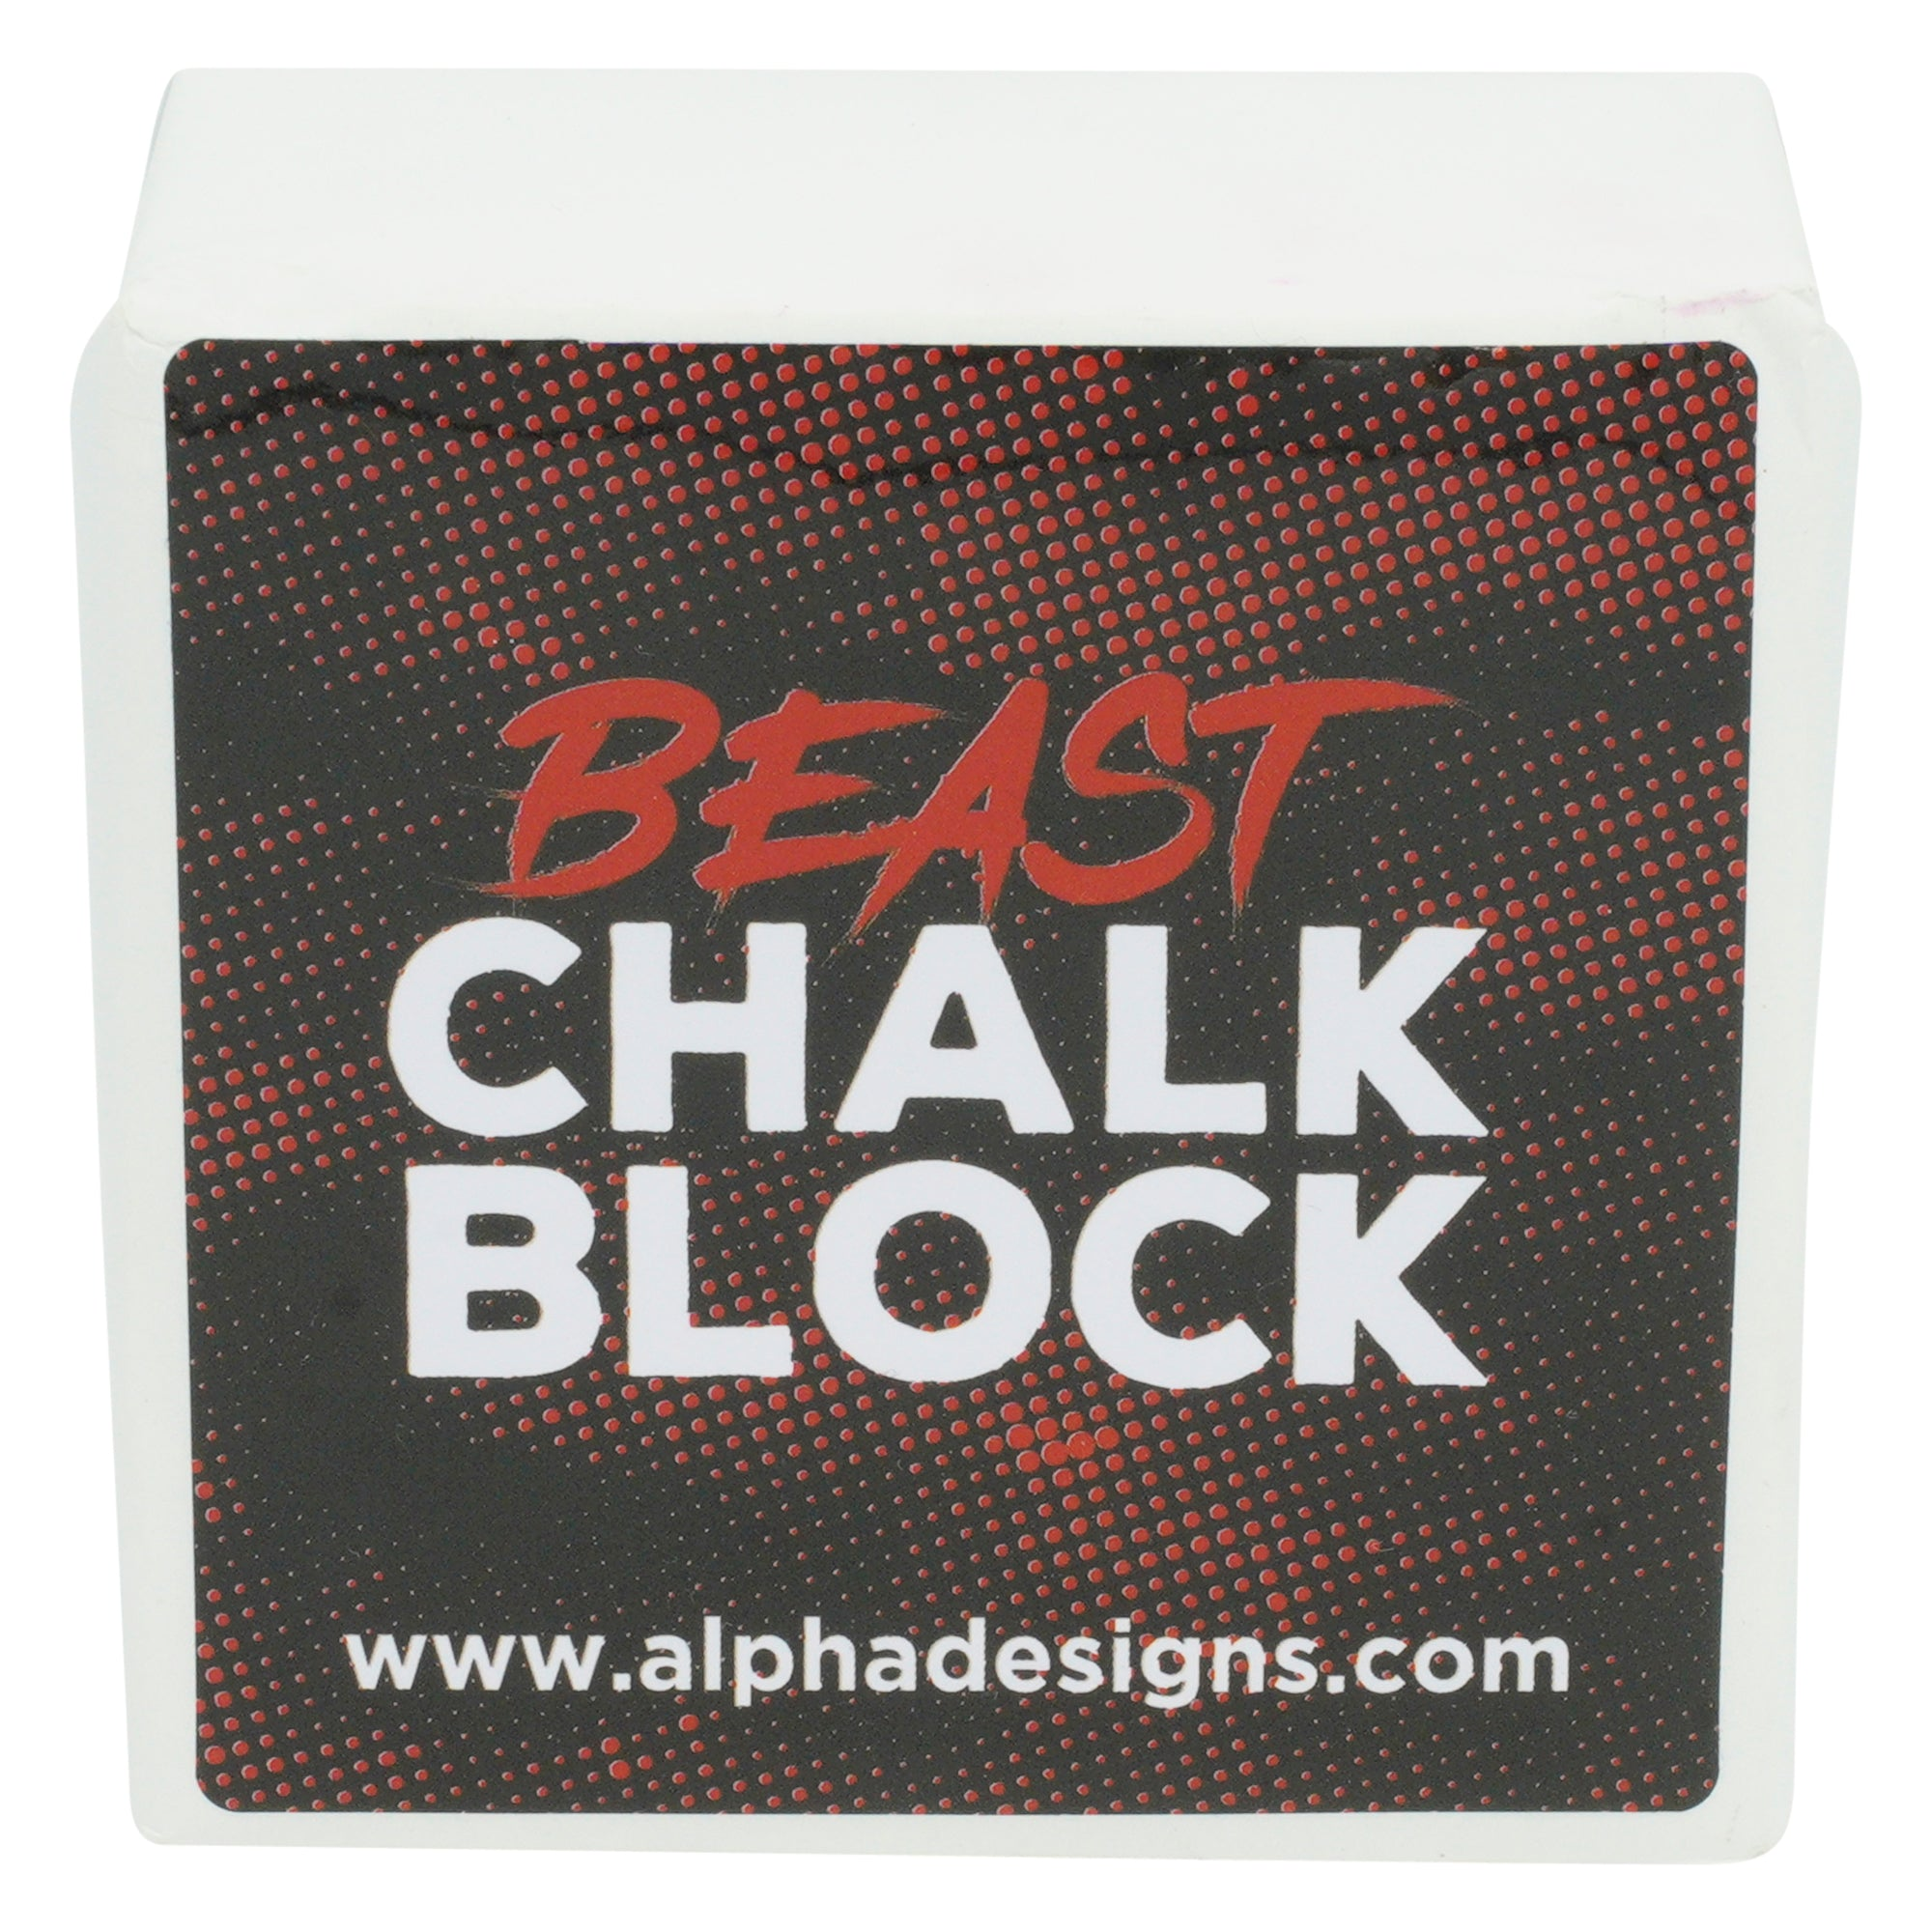 Alpha Designs 'BEAST' Chalk Block